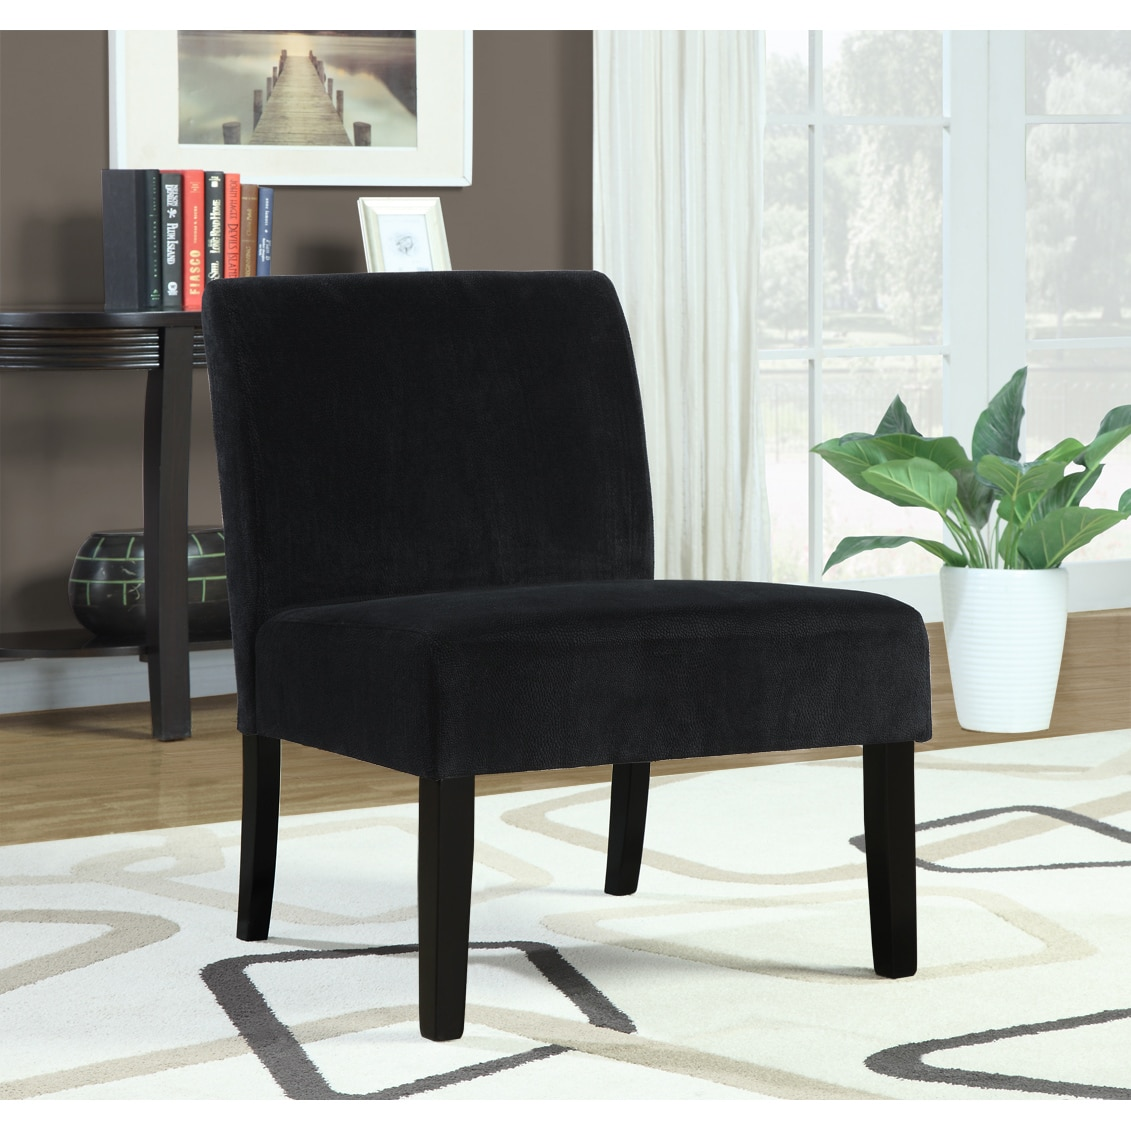 Black Crocodile Velvet Accent Chair 14349421 Overstock